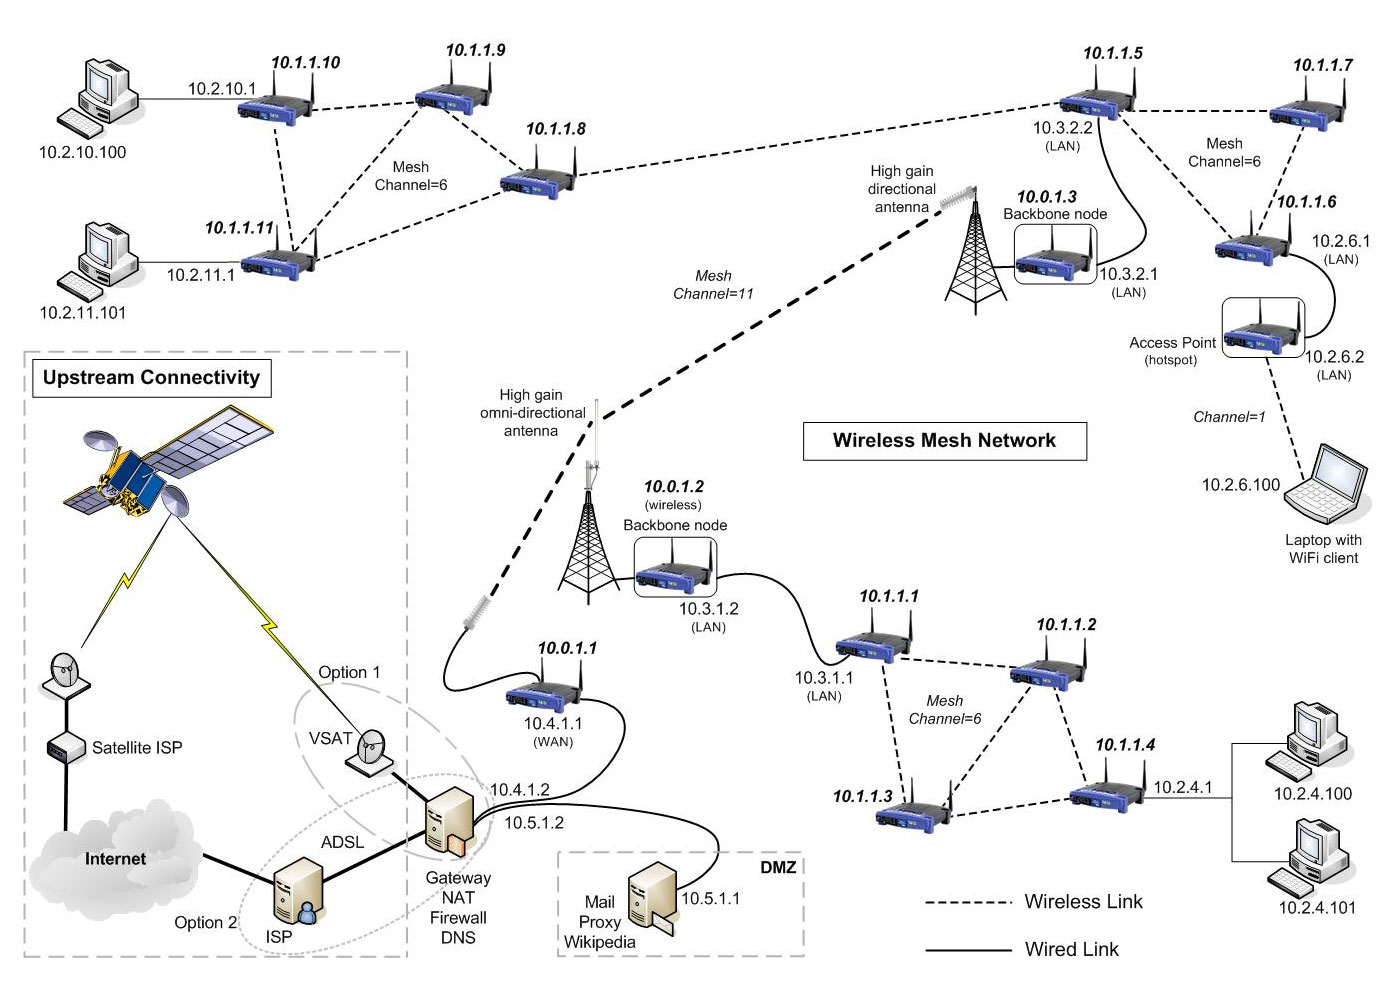 Wireless mesh network example, courtesy of Meraka Institute